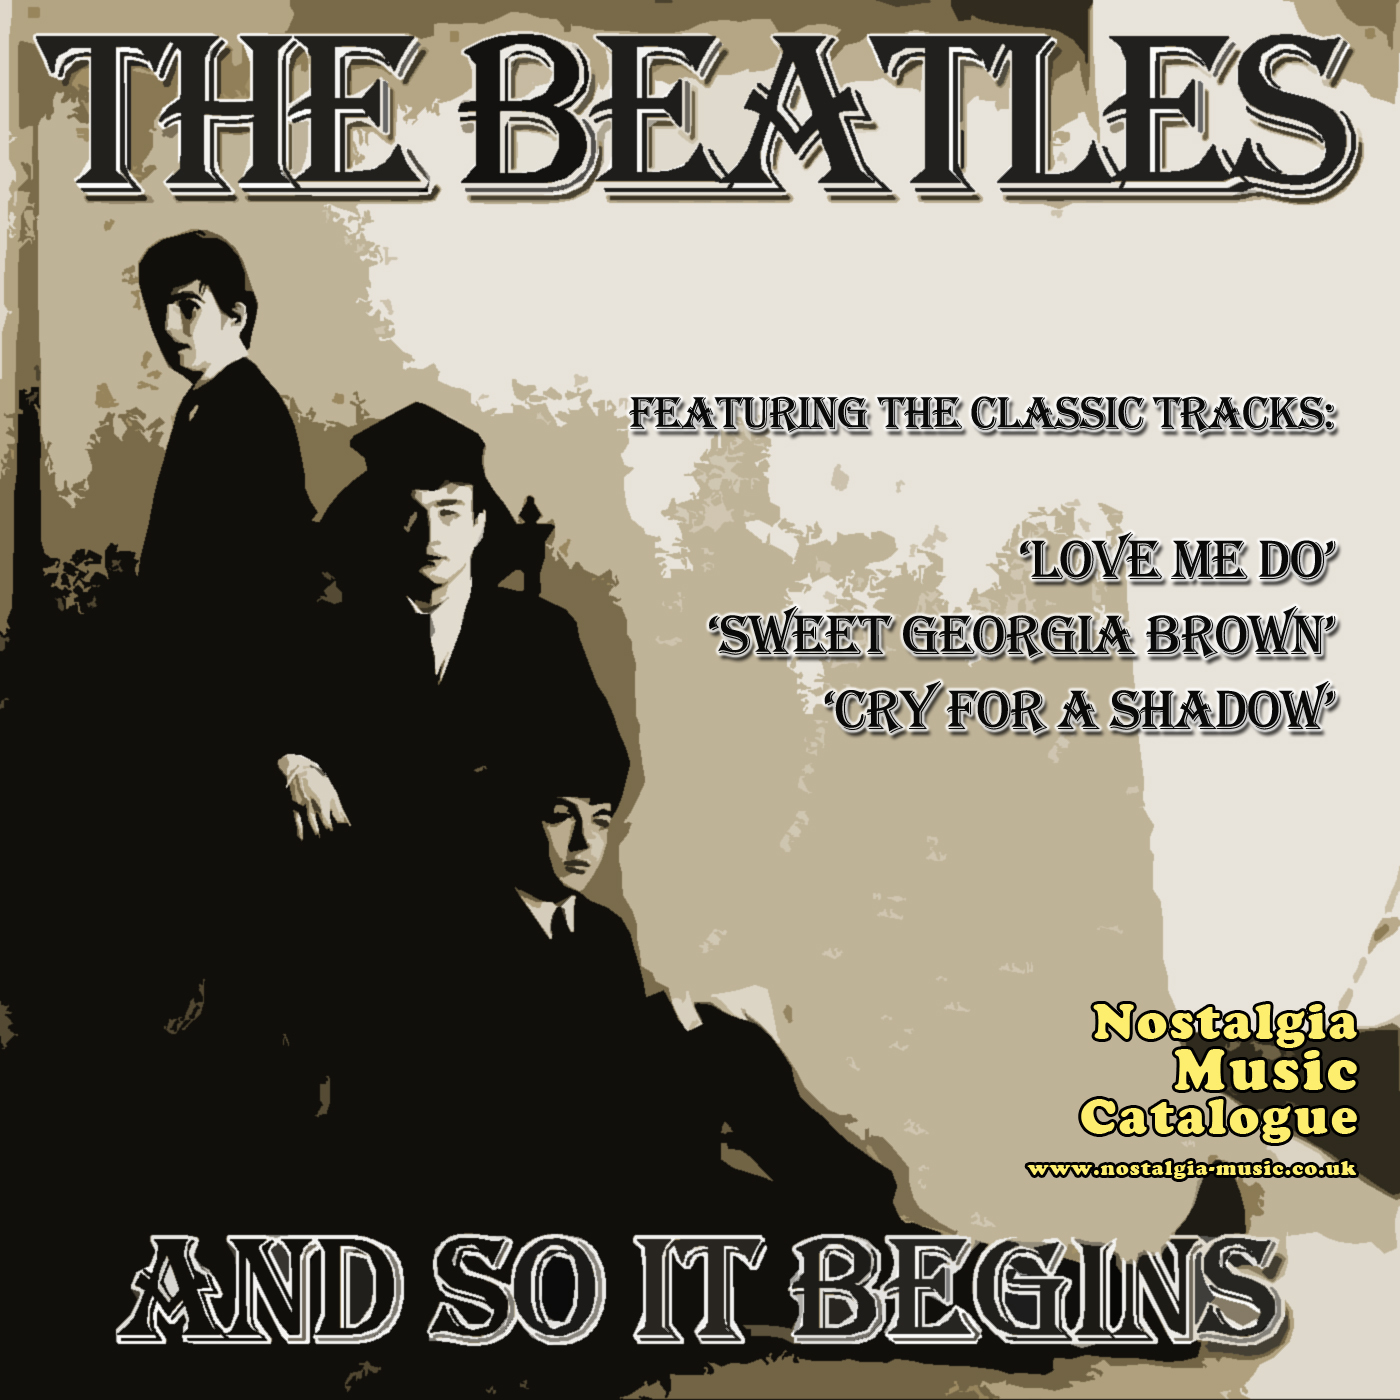 The Beatles – And So It Begins